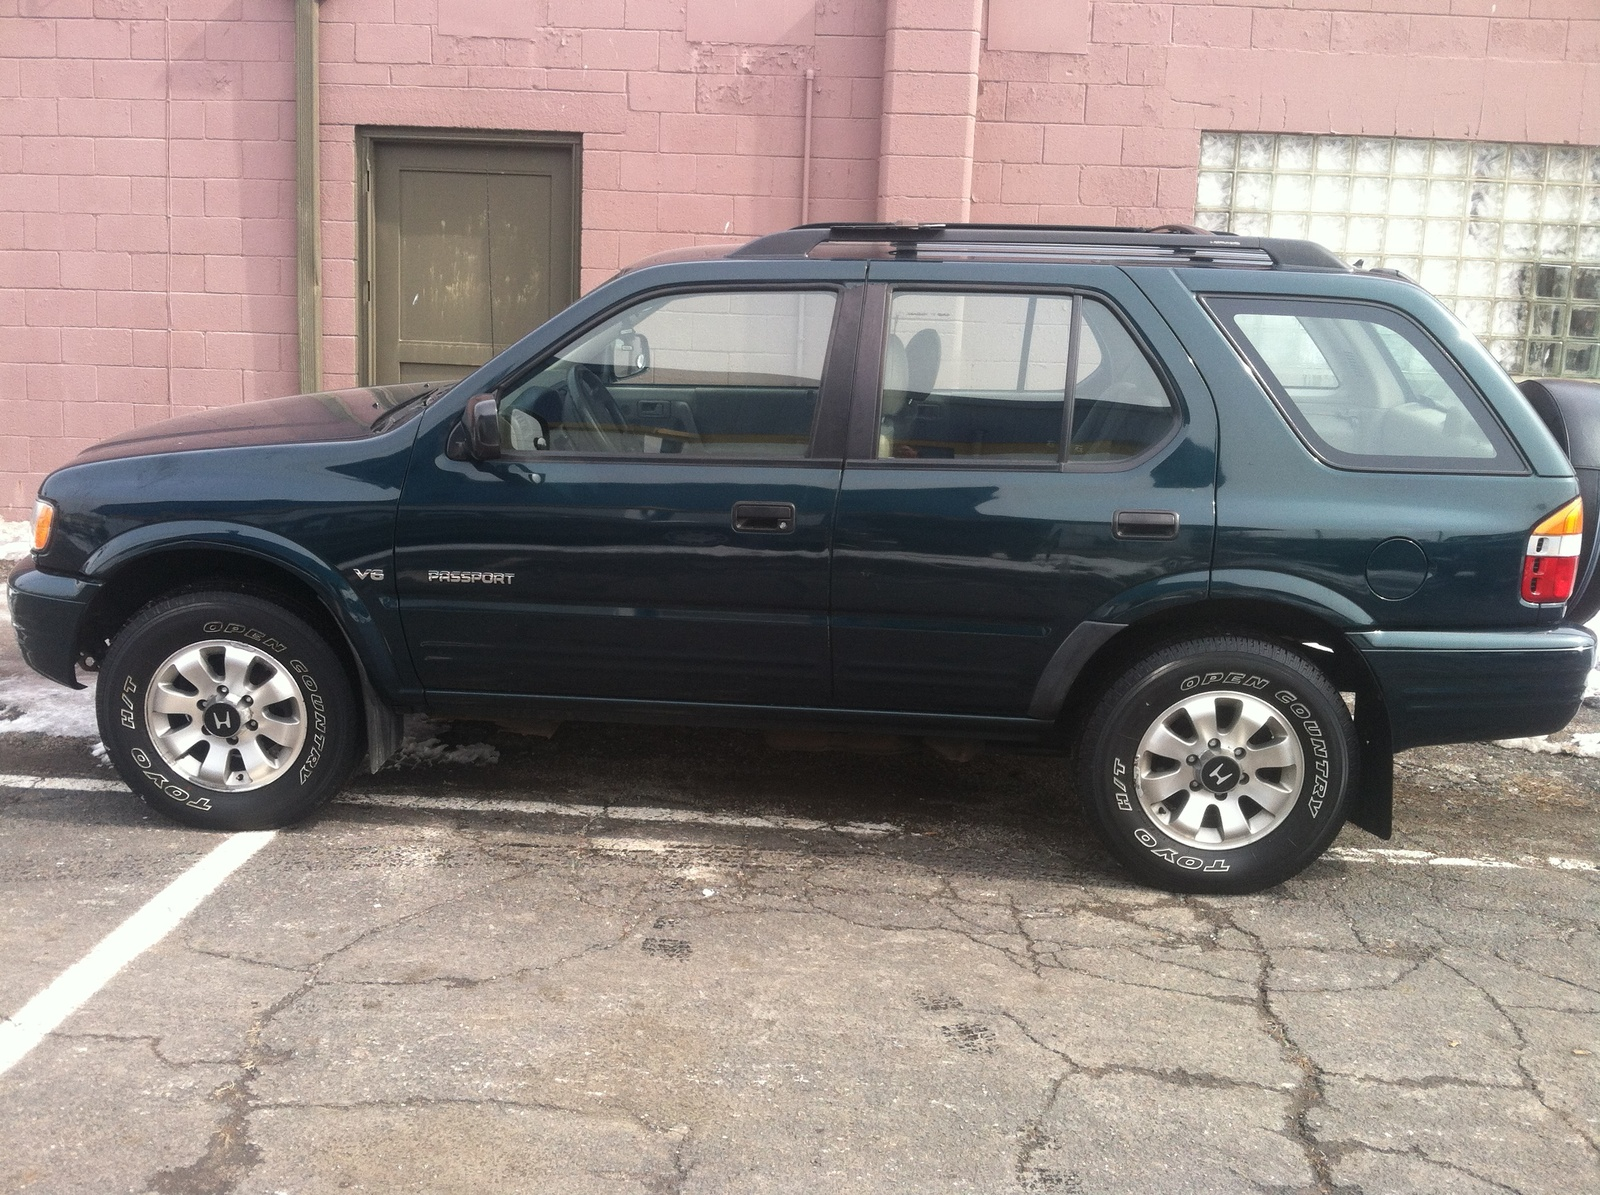 Picture of 2002 Honda Passport 4 Dr LX 4WD SUV